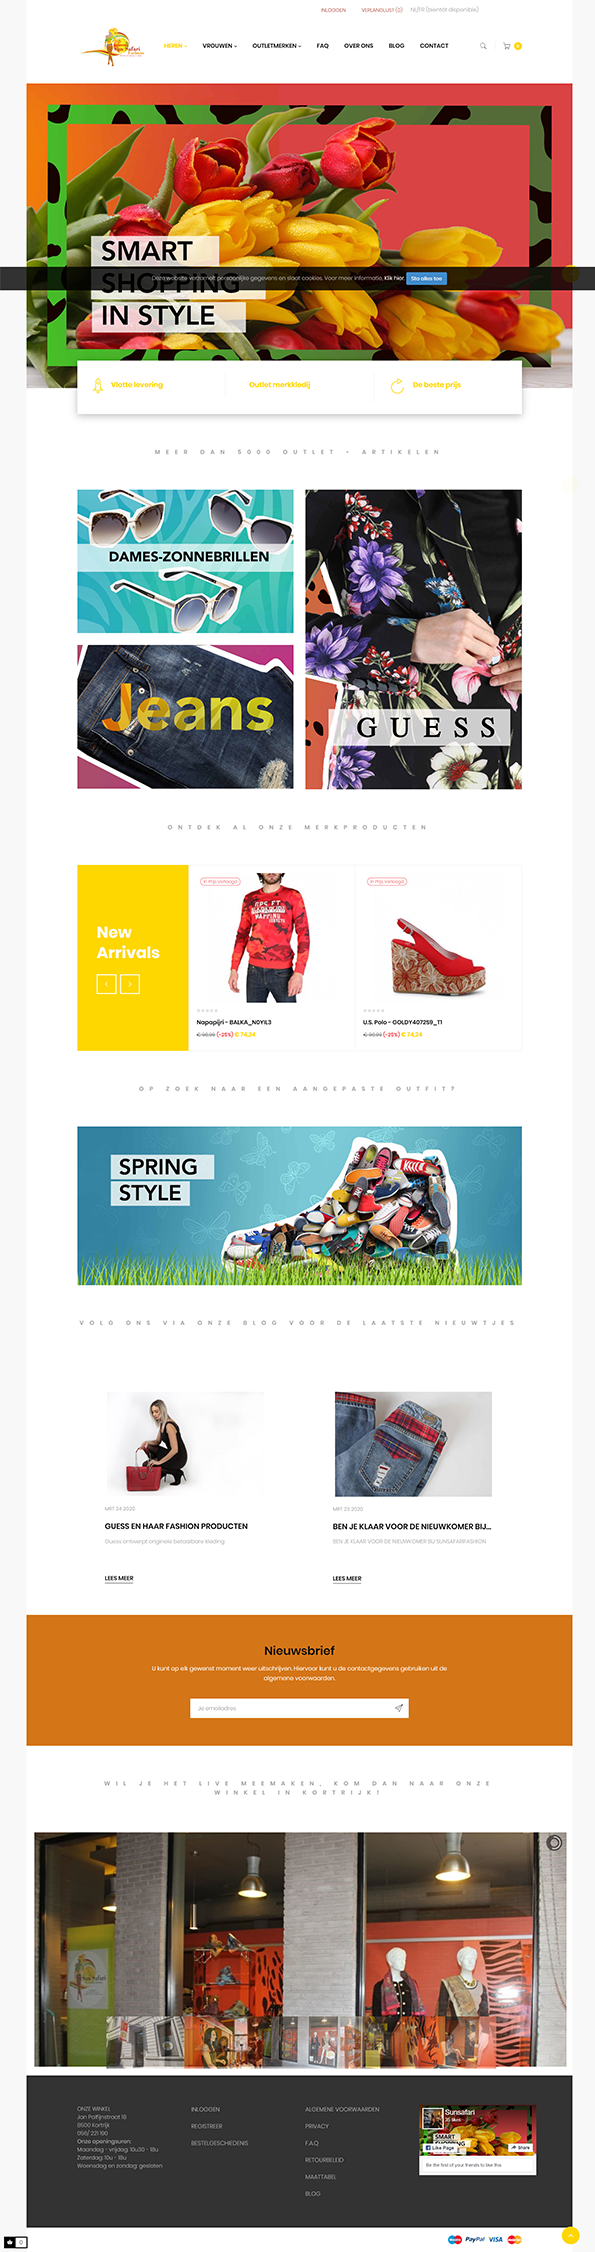 Prestashop online outlet